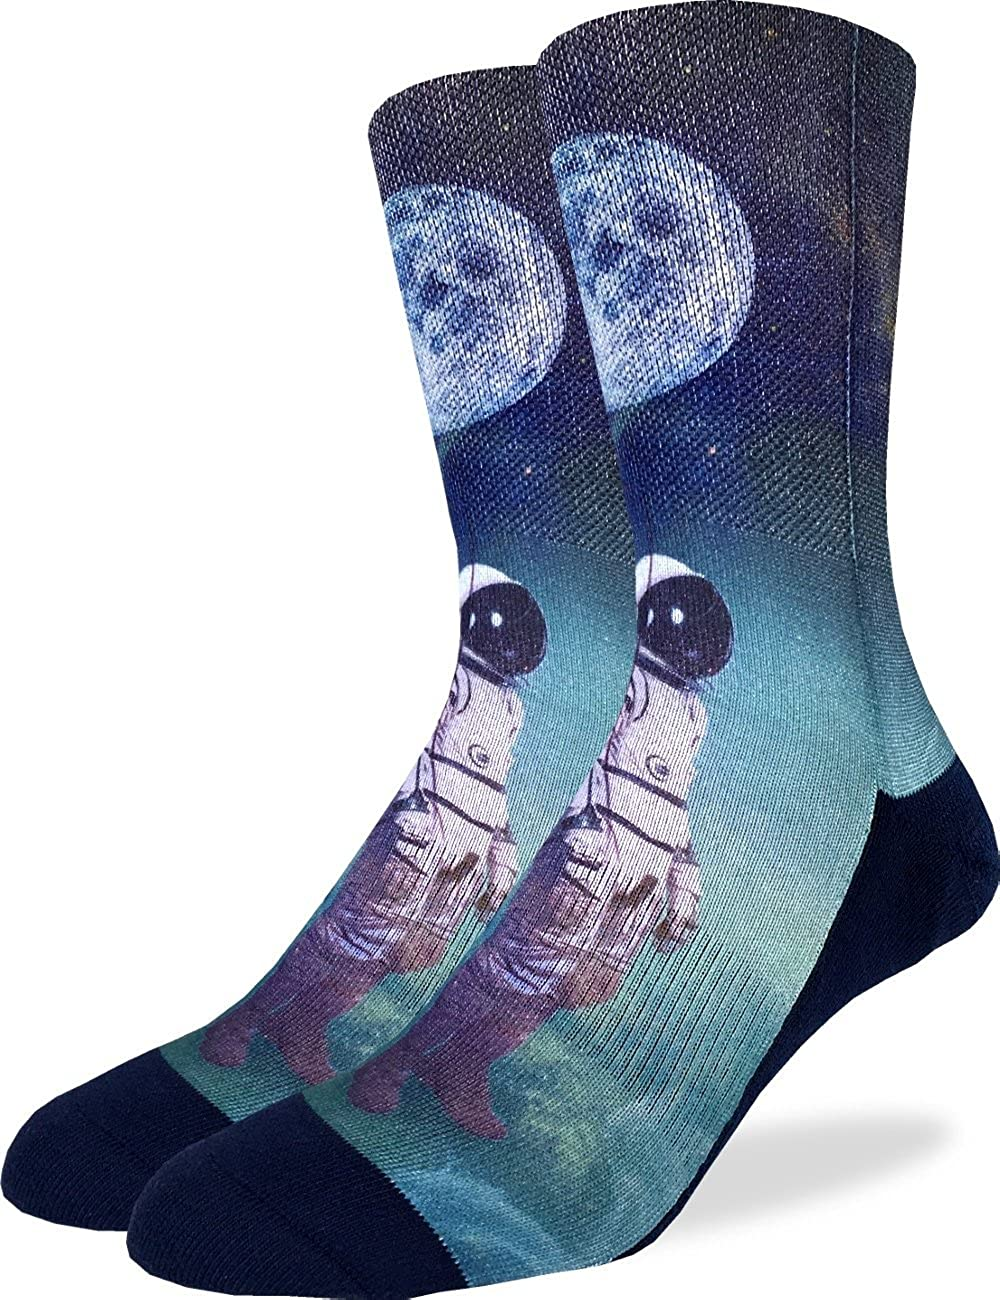 Good Luck Sock Men's Astronaut with Balloon Crew Socks - Adult Shoe Size 8-13 4103